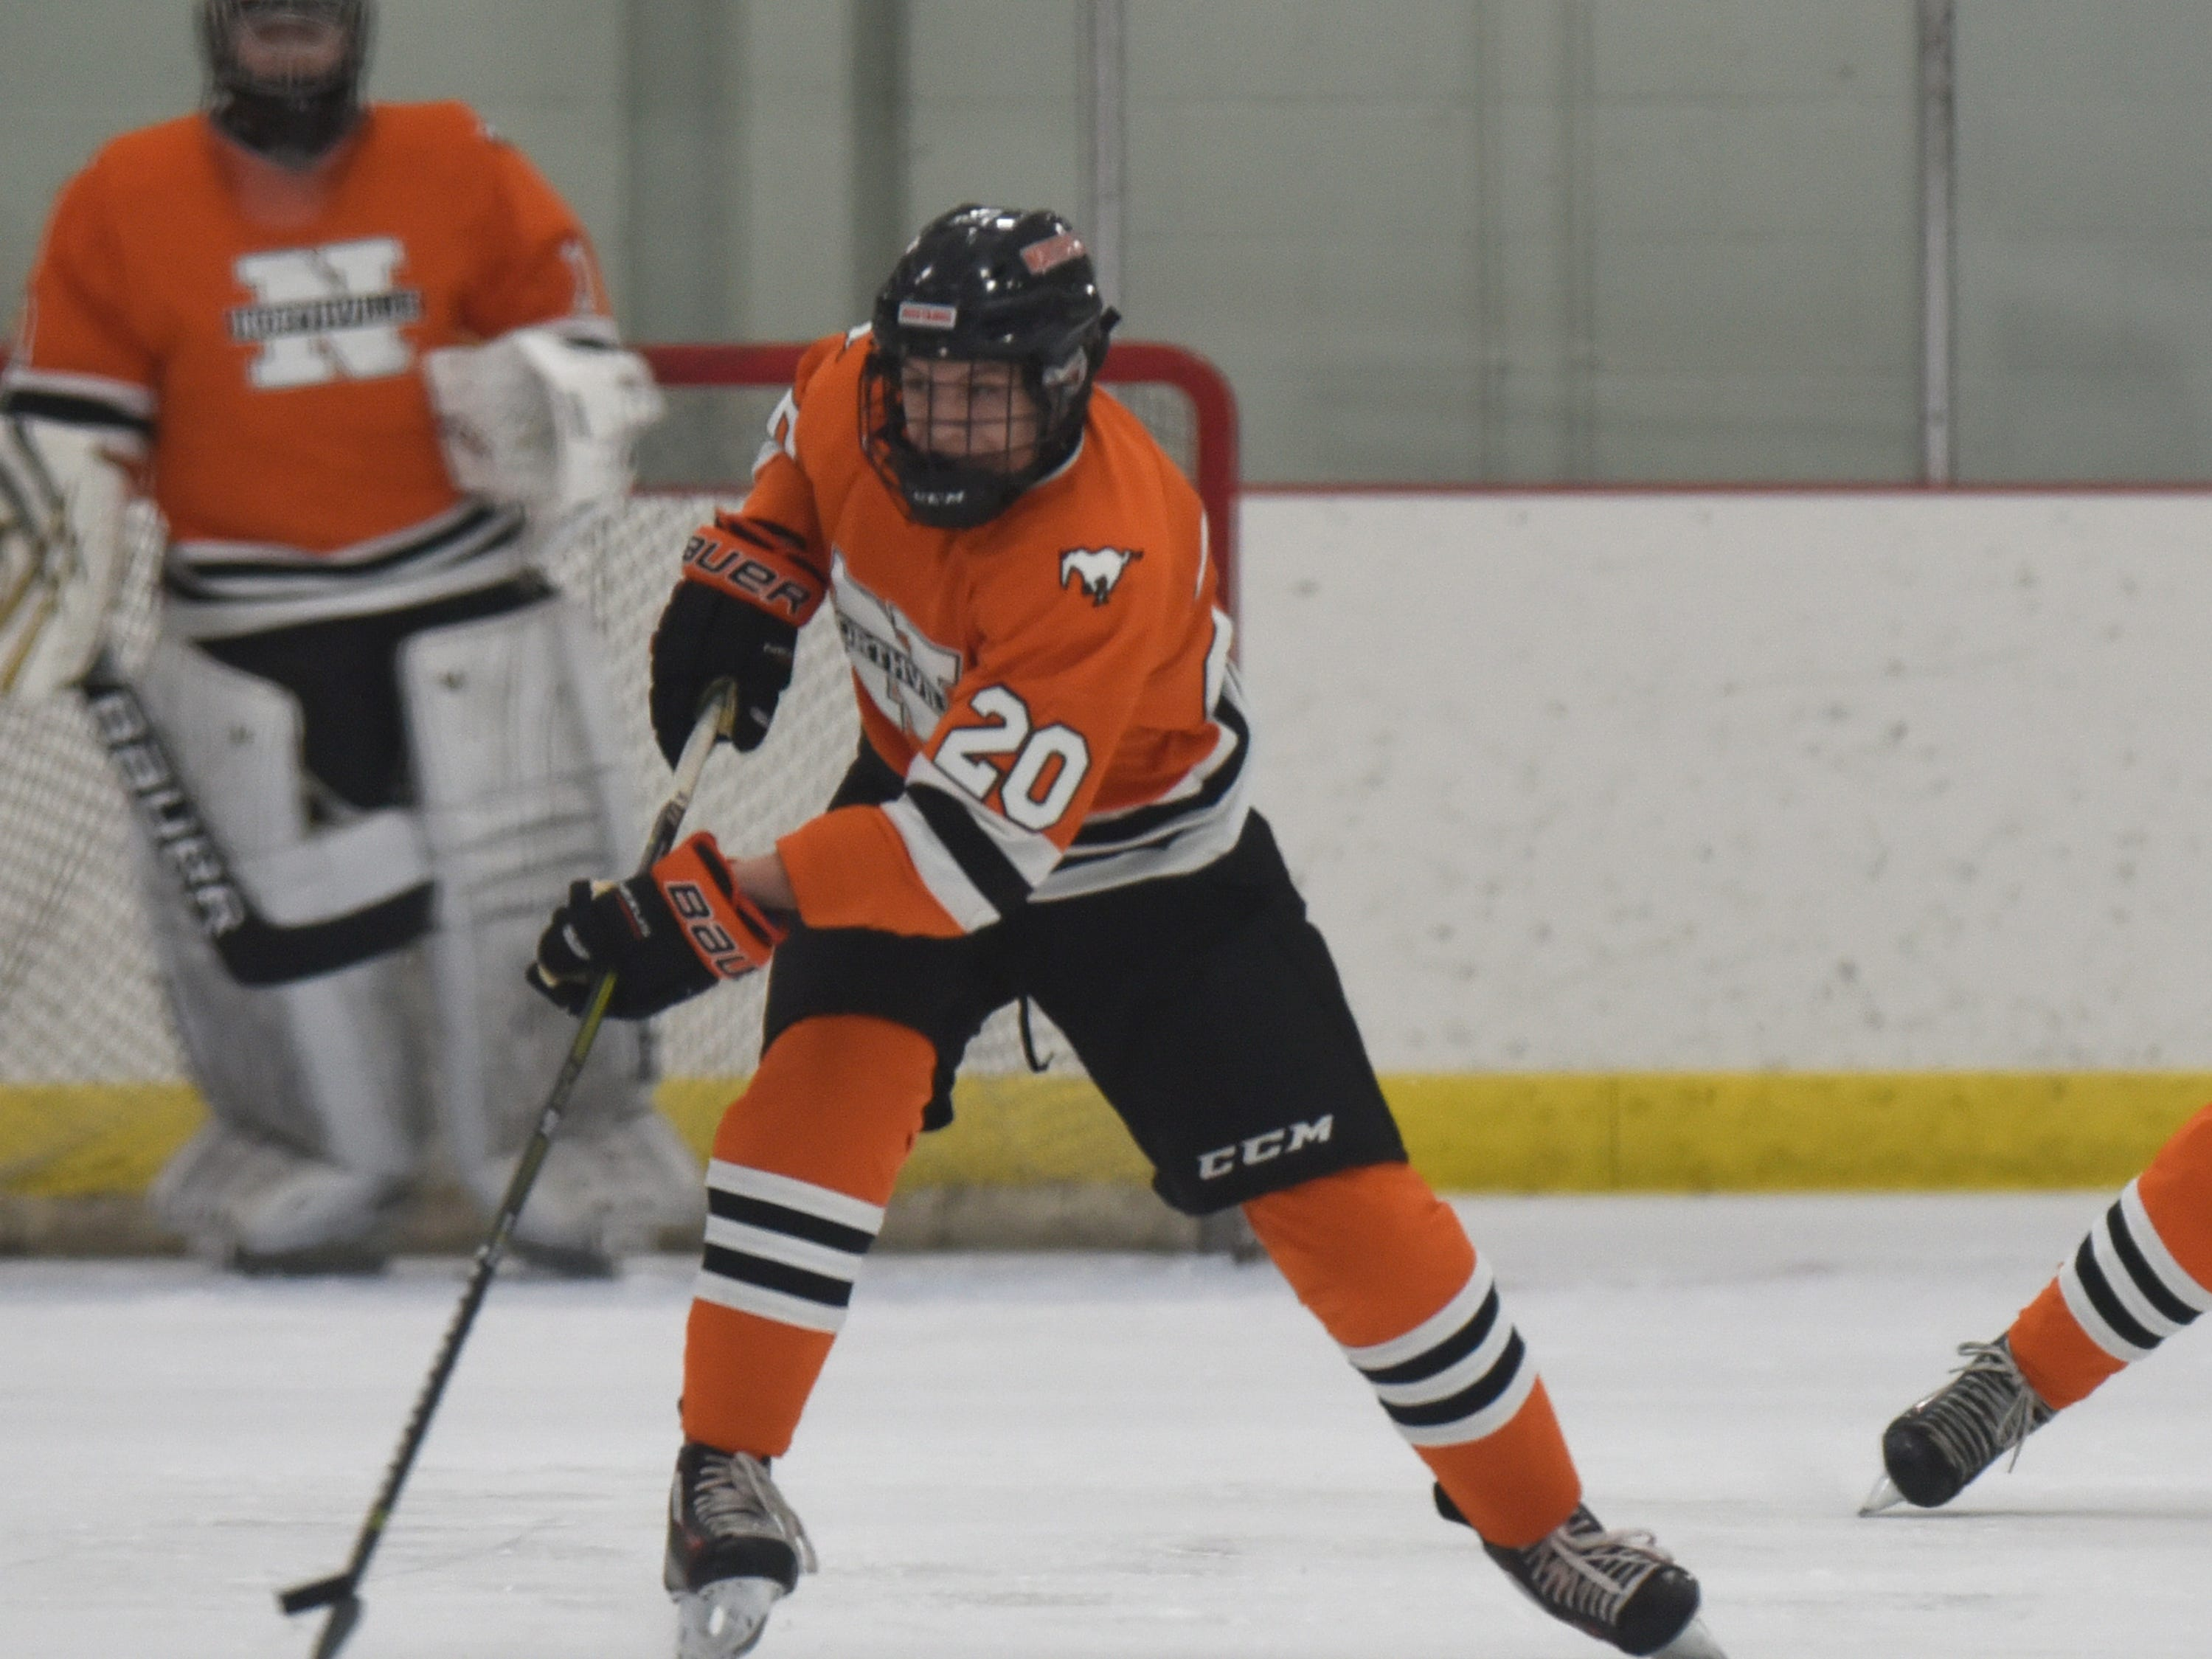 Northville forward Nick McInchak (20) during a KLAA West match up against Novi played at Novi Ice Arena Nov. 20, 2018.